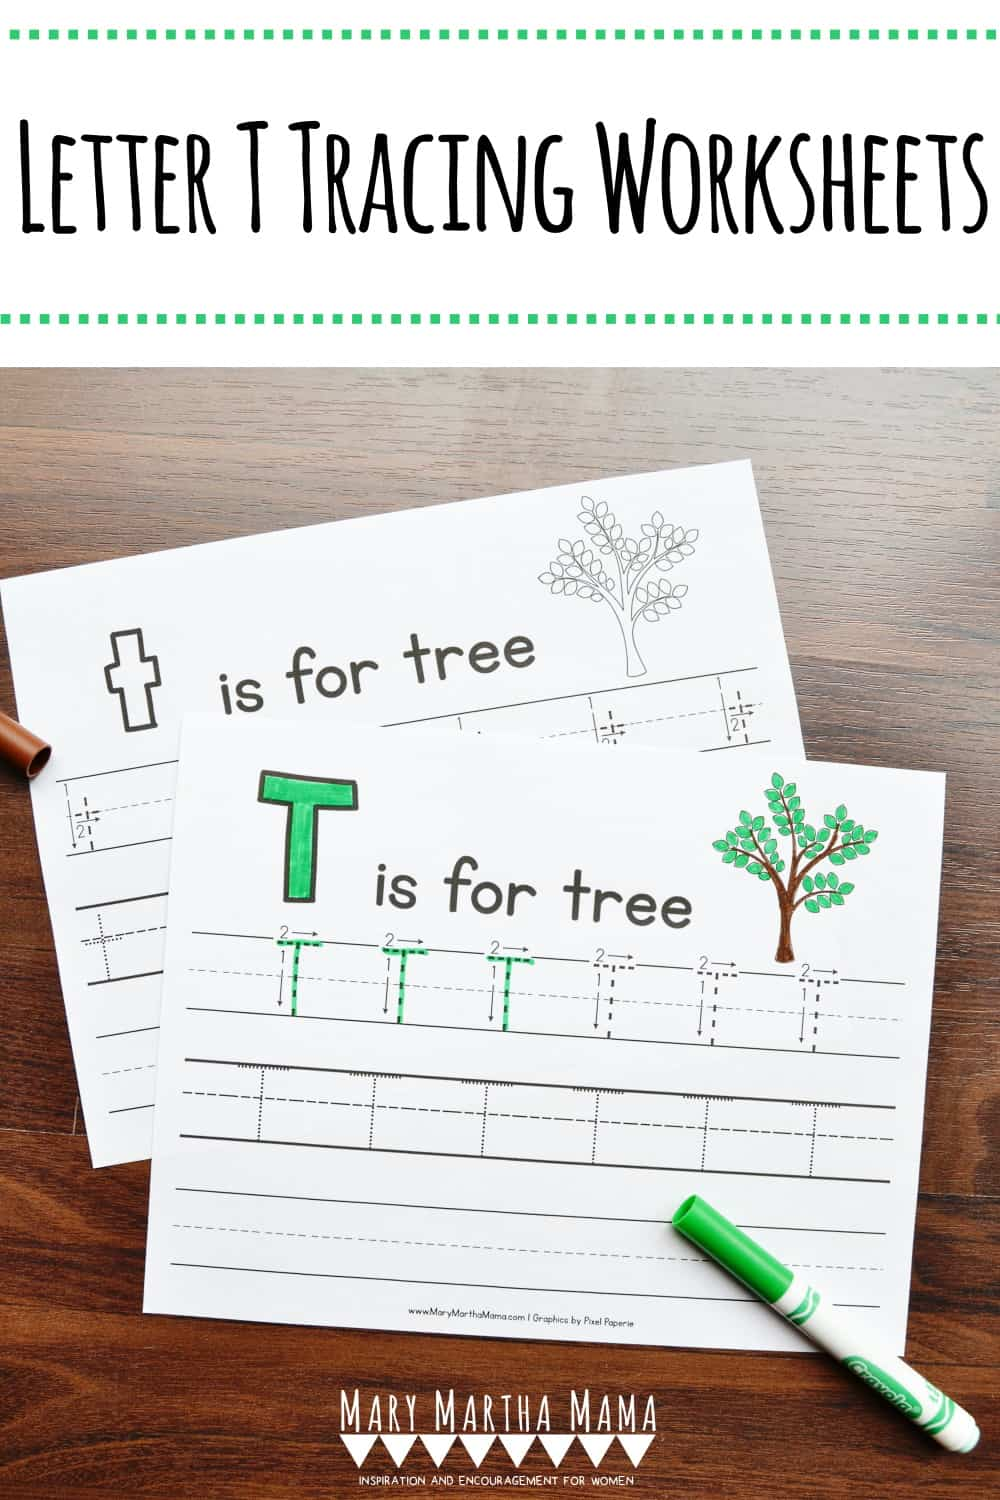 Use these free printable Letter T Tracing Worksheets to help your kiddo work on learning proper letter formation for lower and upper case letter T.